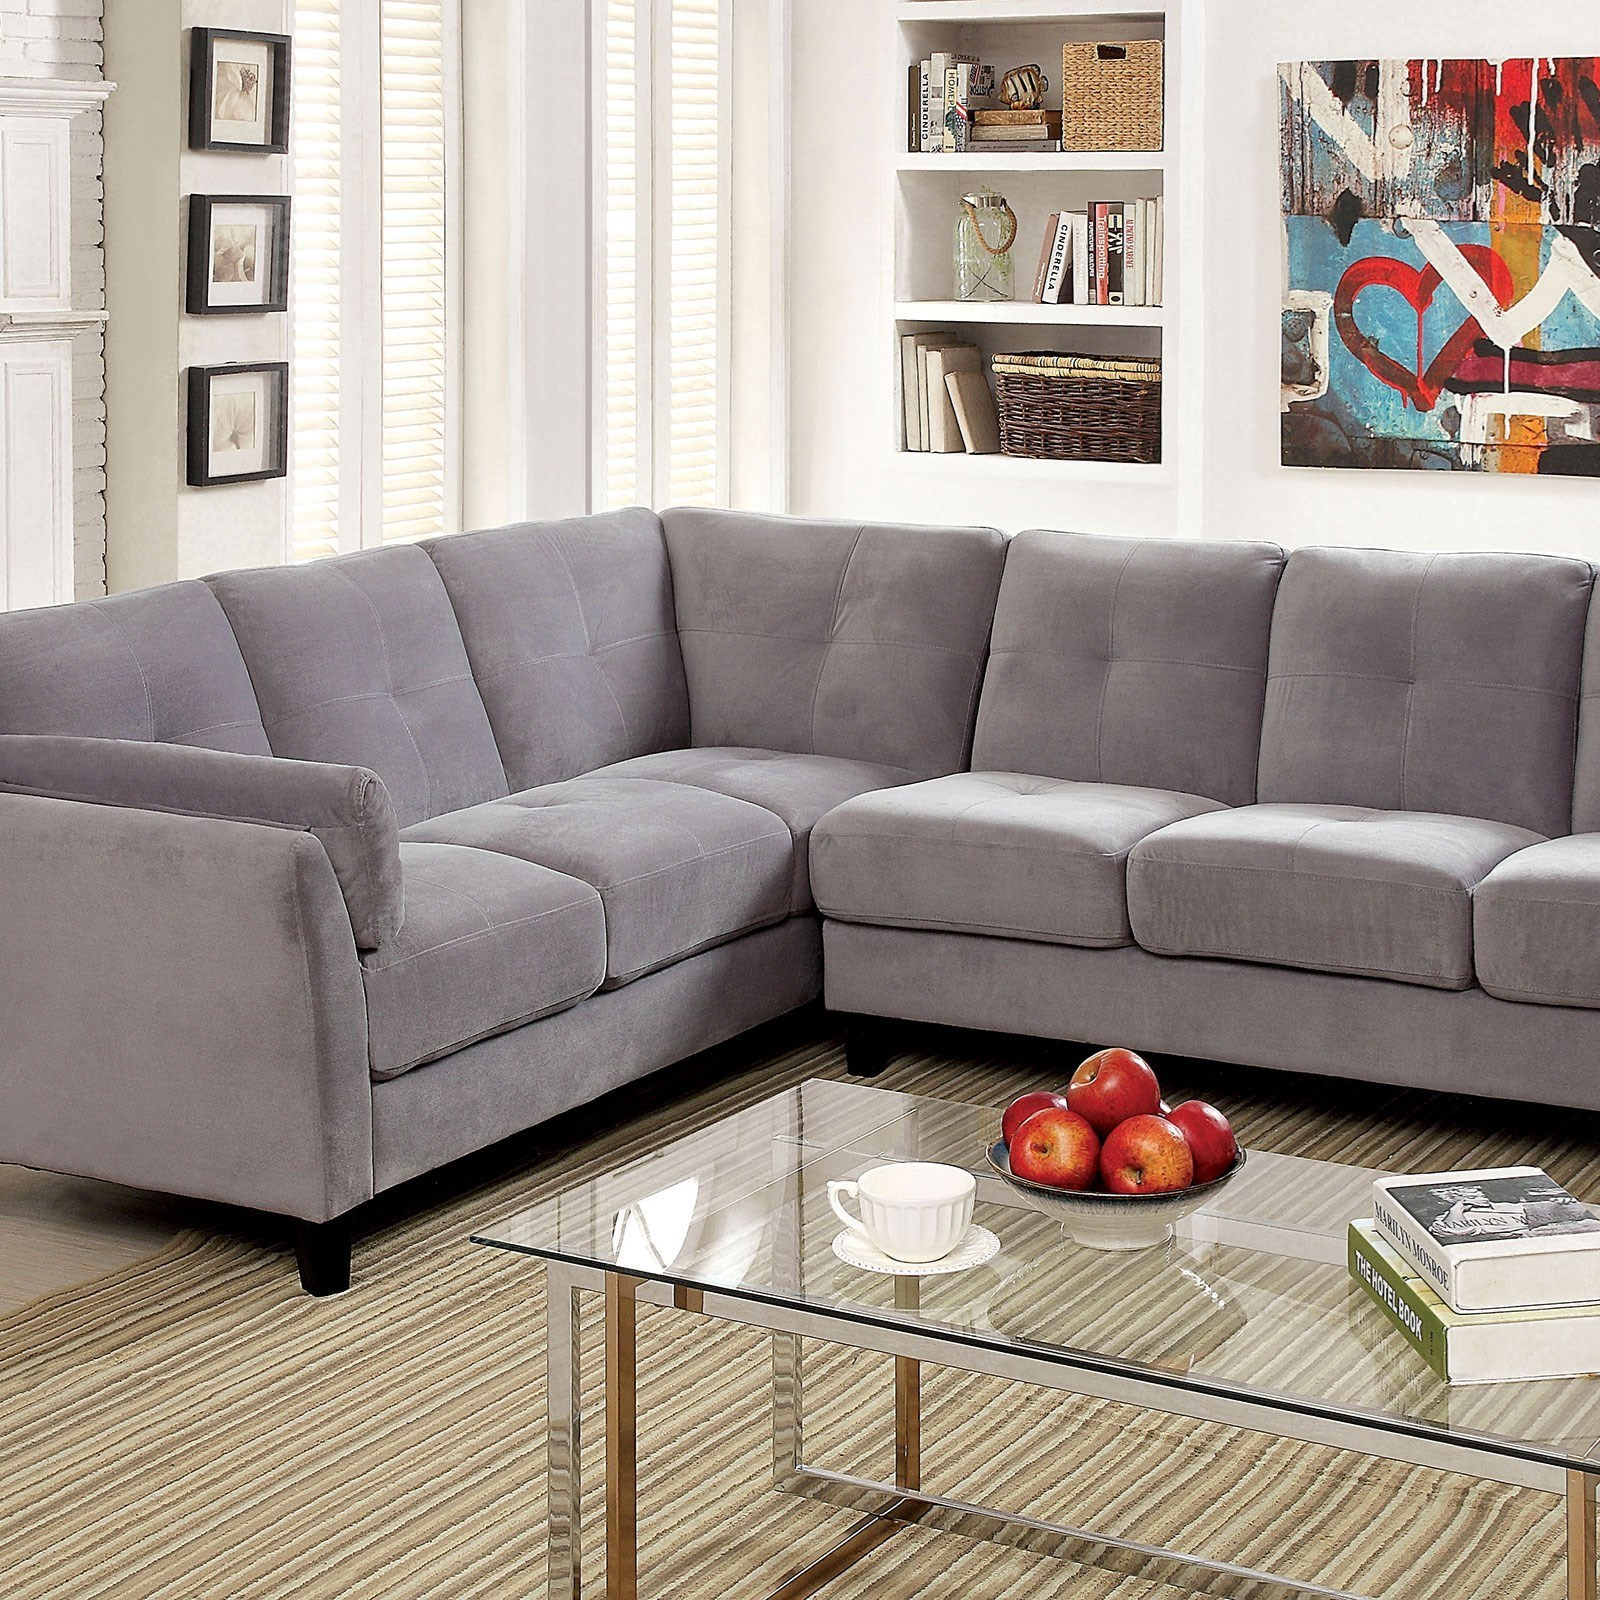 Furniture Of America Peever II Modern Sectional Sofa With